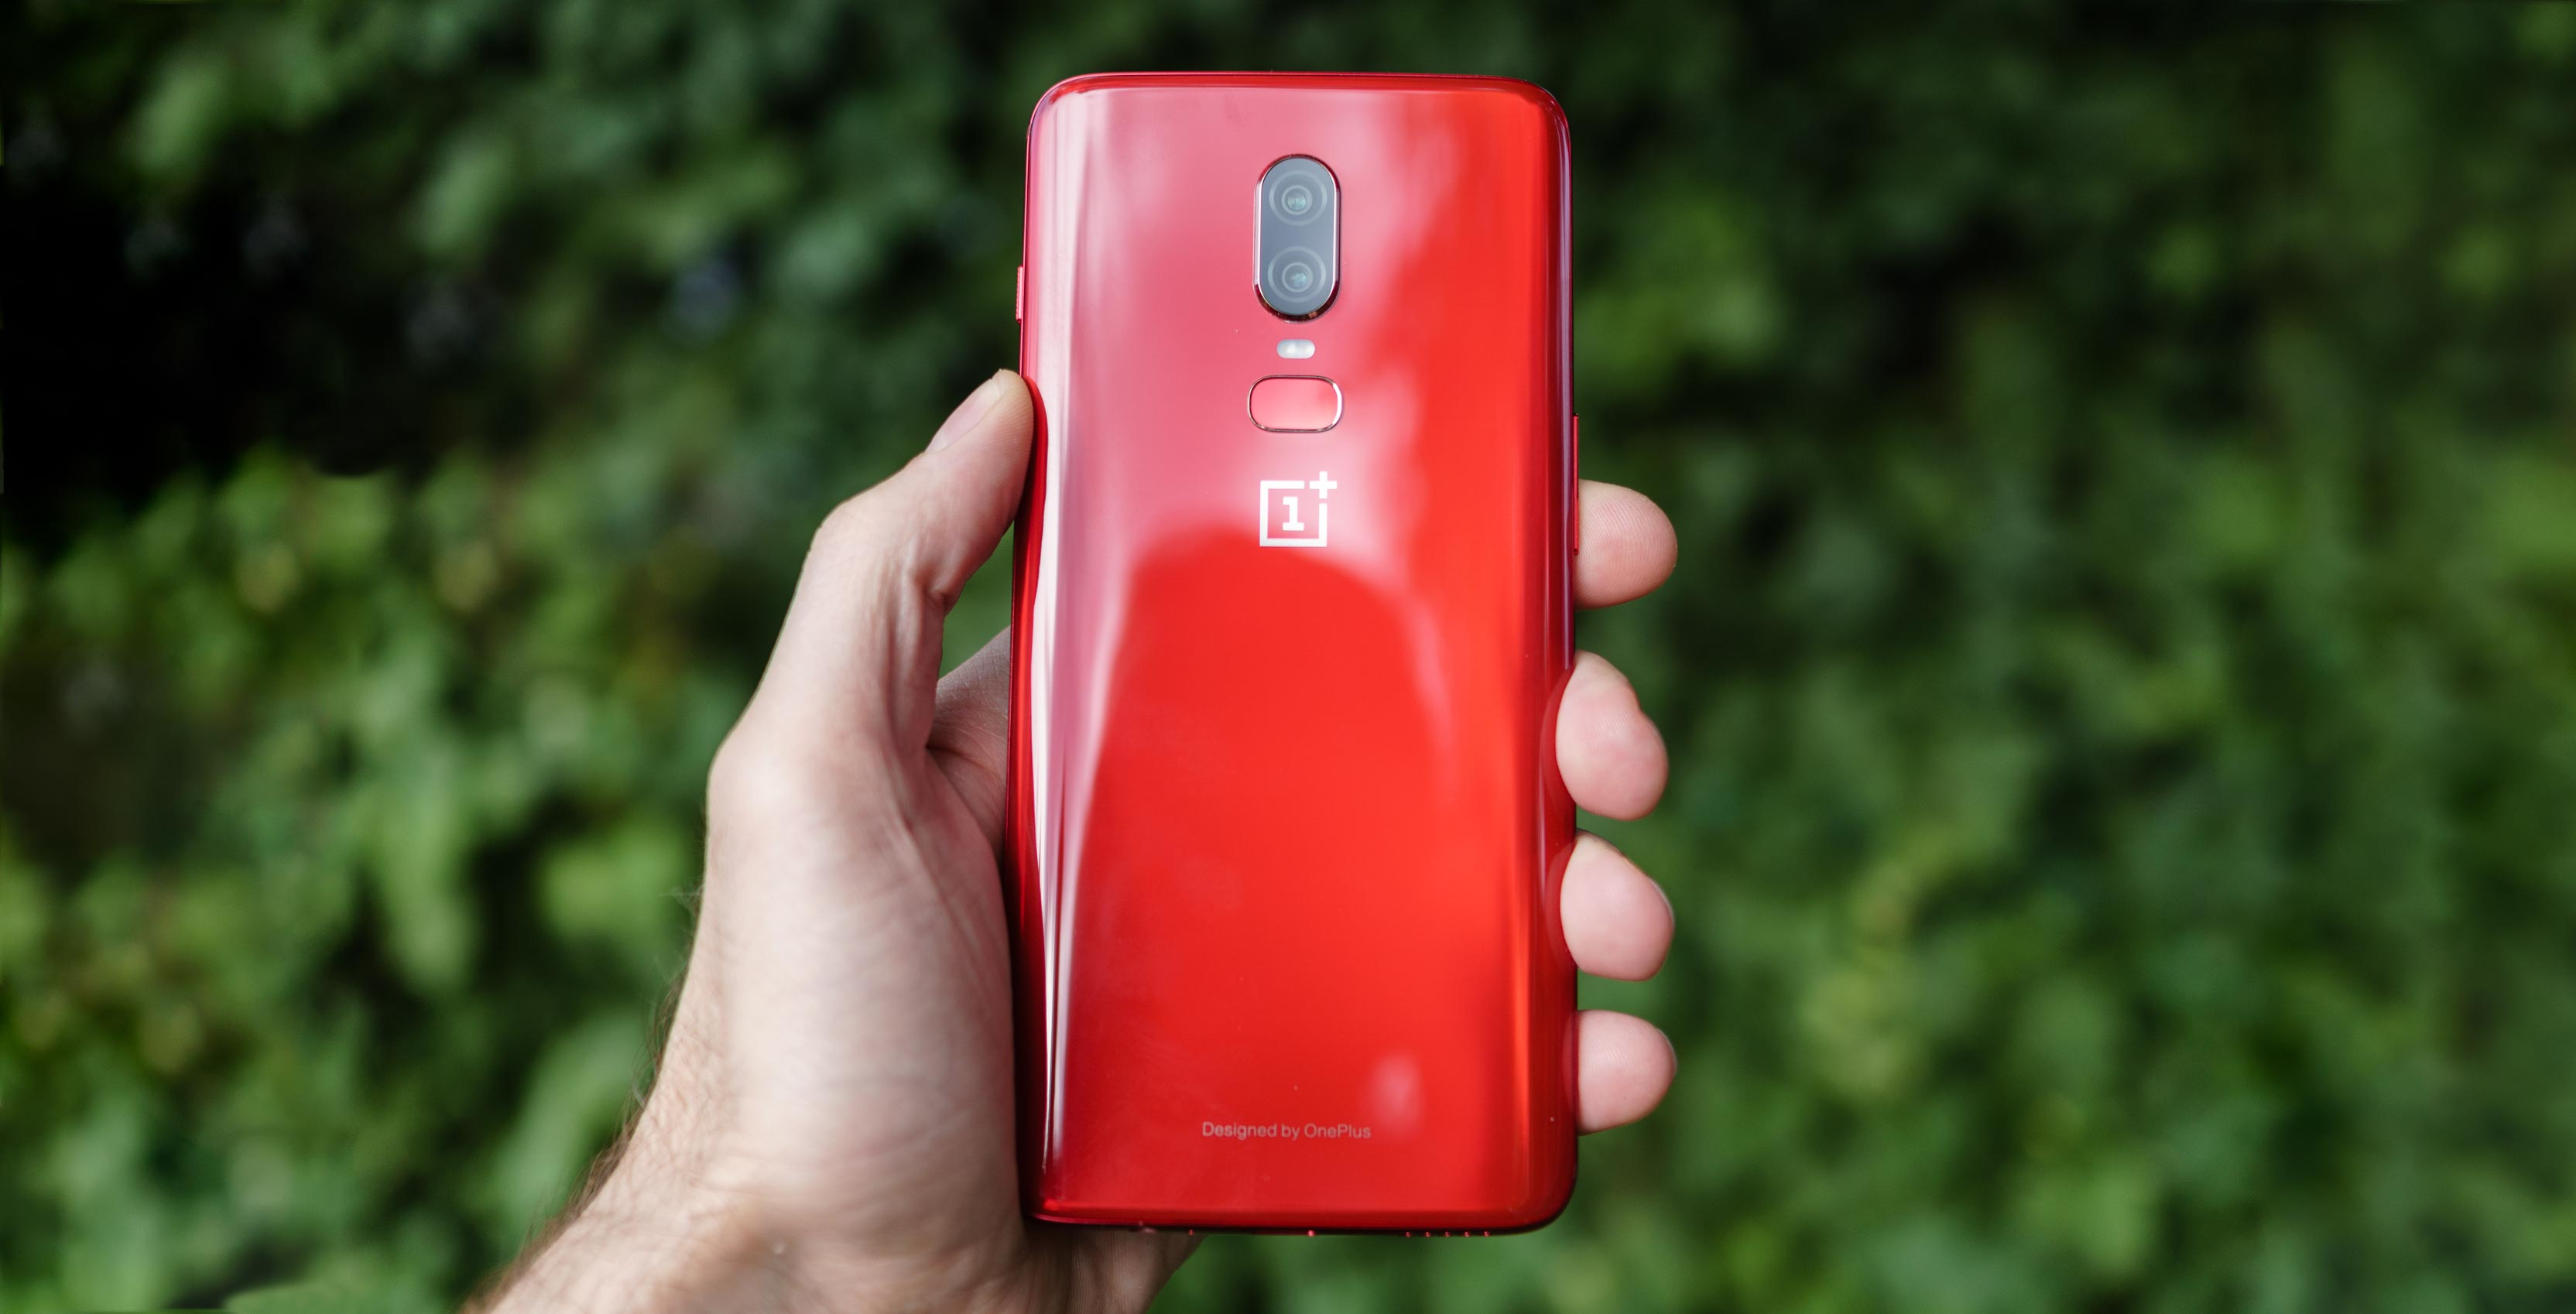 The OnePlus 6 in 'Red'